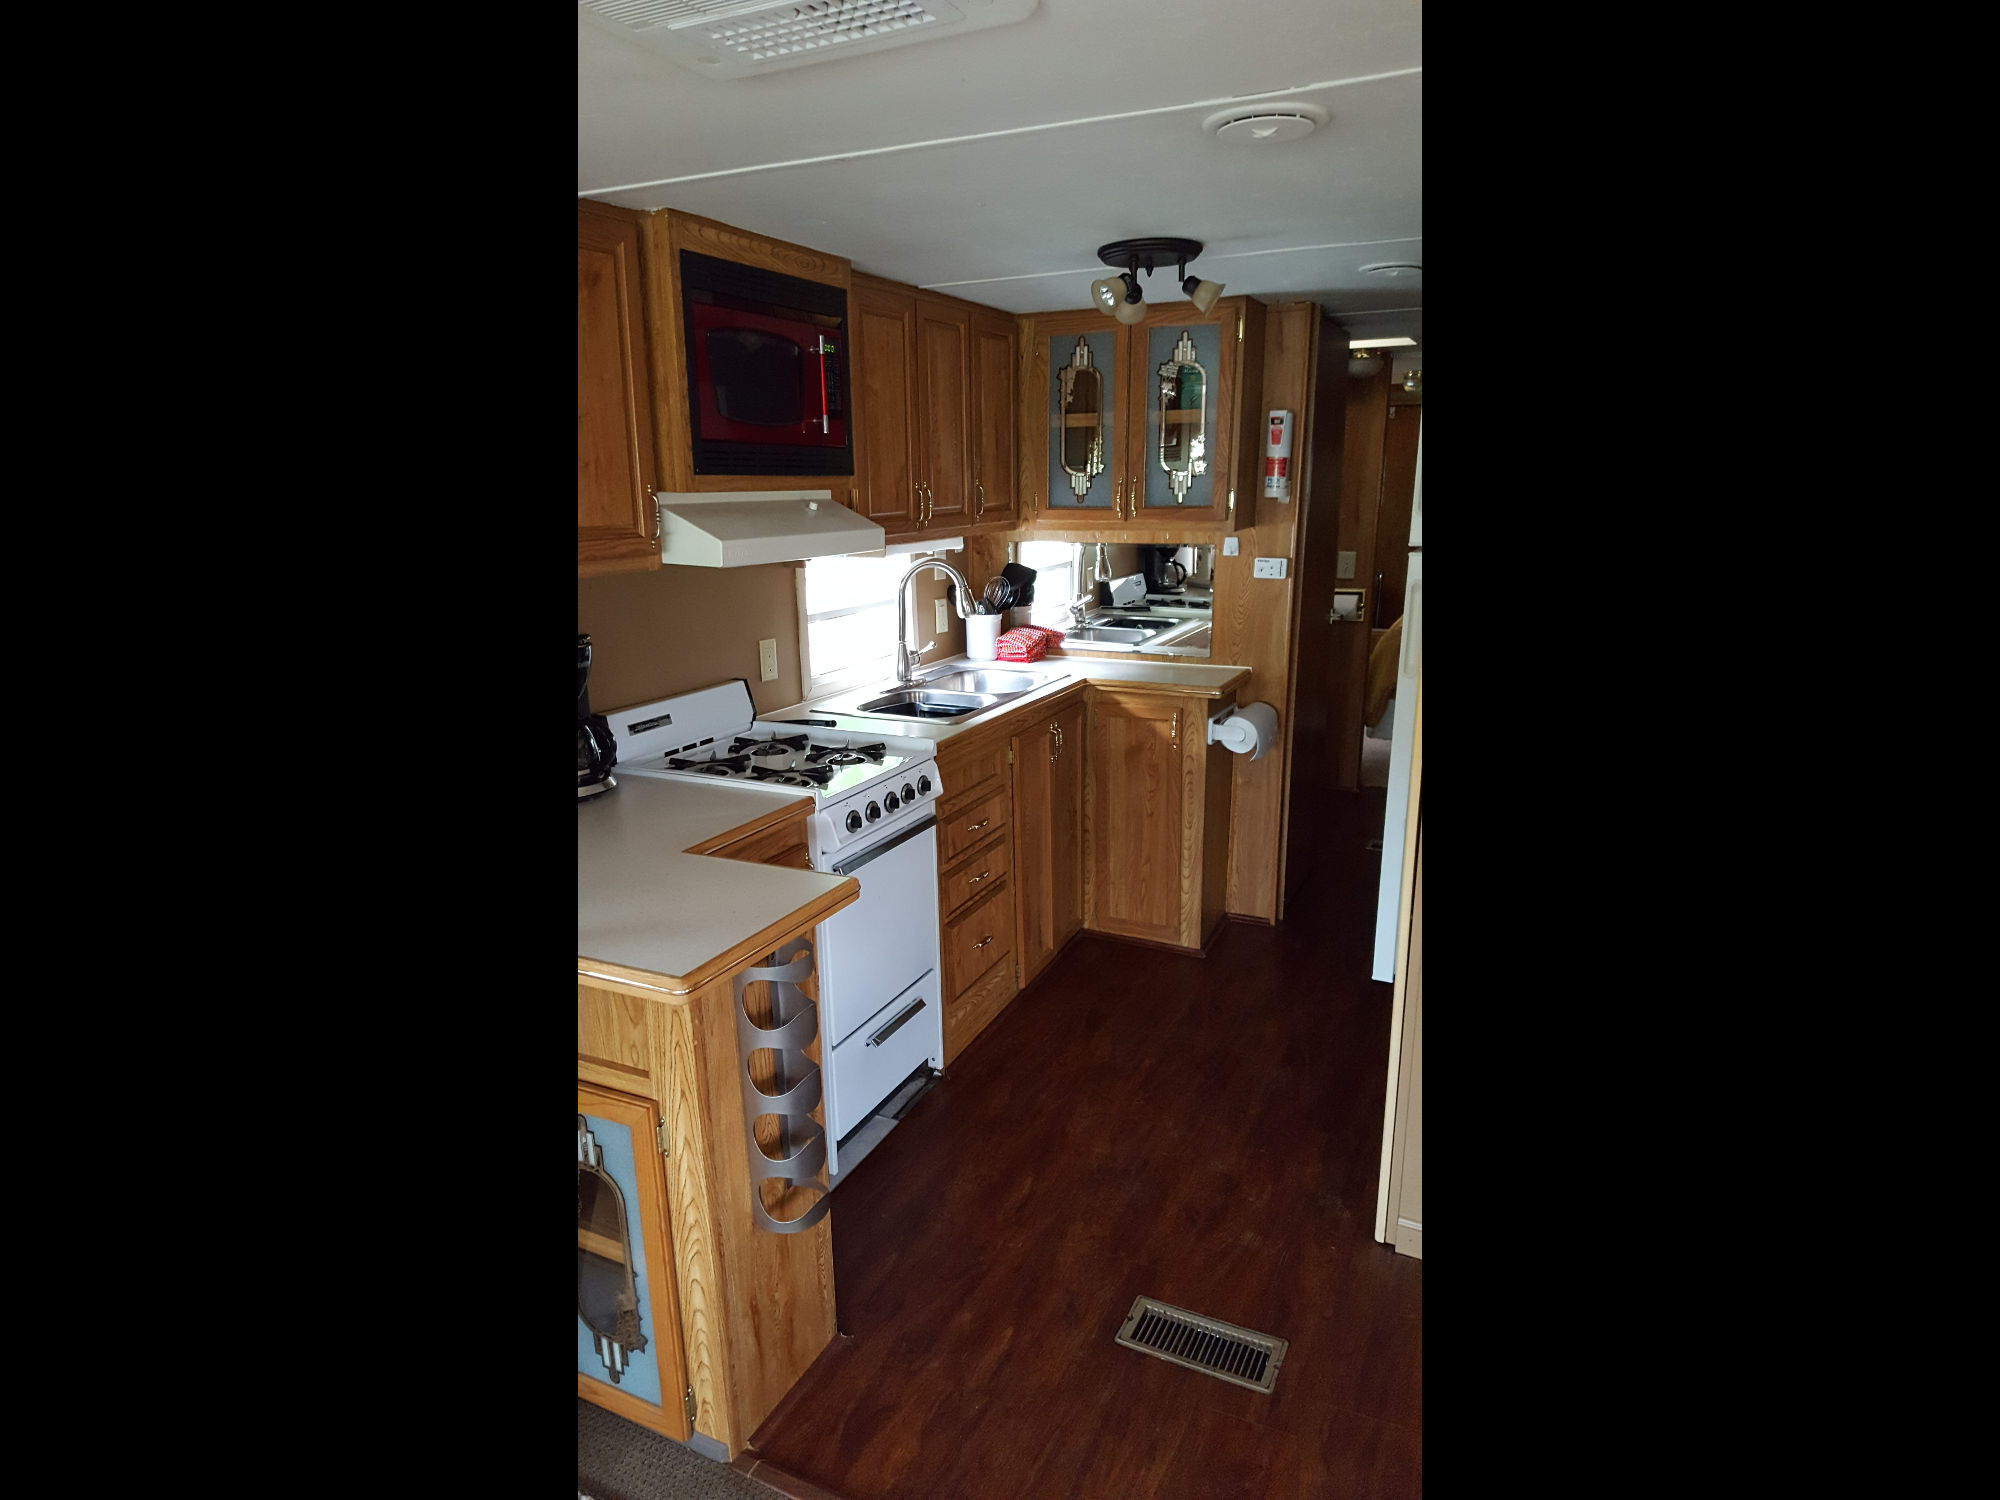 Deluxe trailer interior view of kitchen